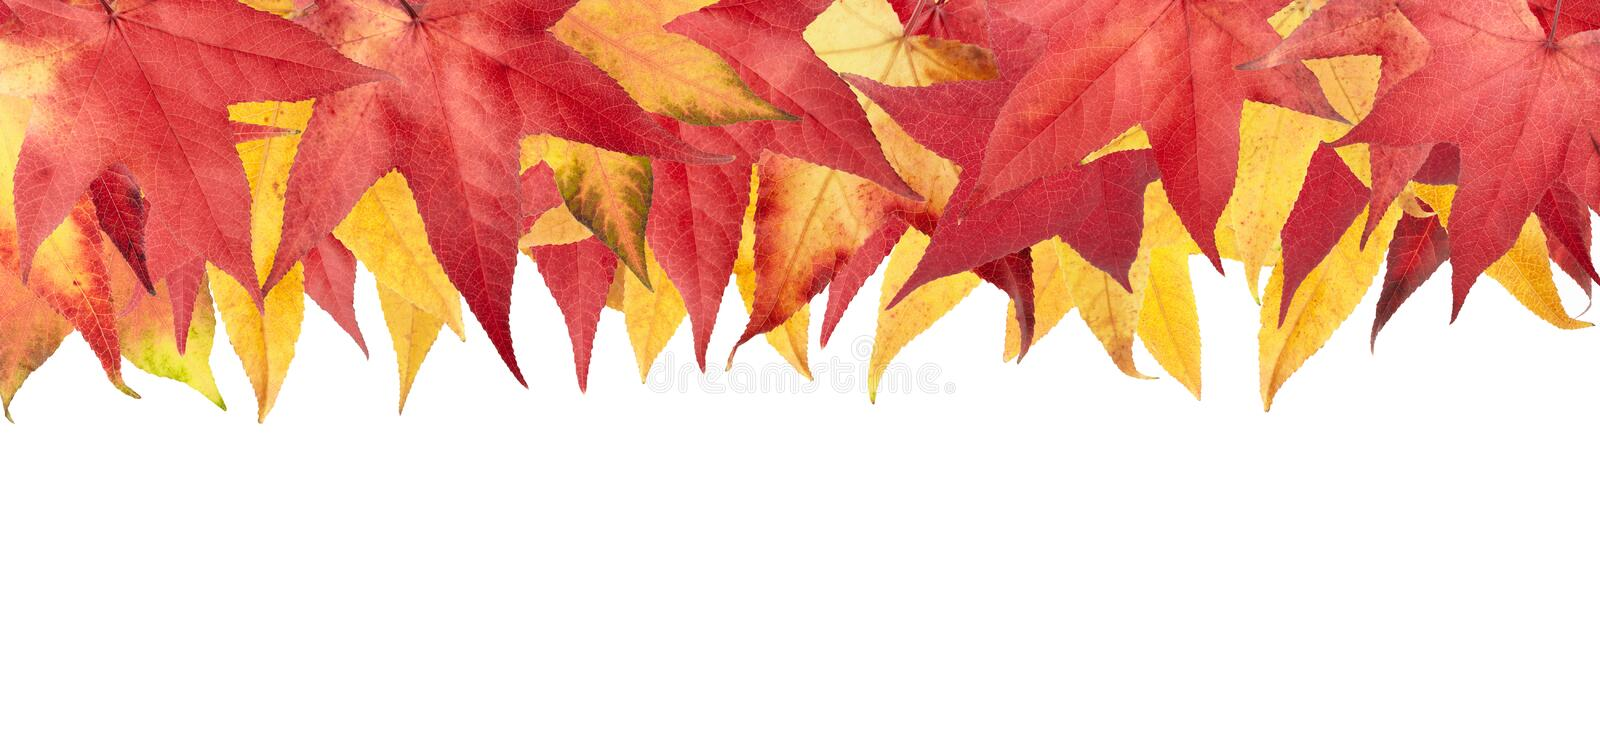 Download Autumn Leaves Frame Stock Photography - Image: 20849762